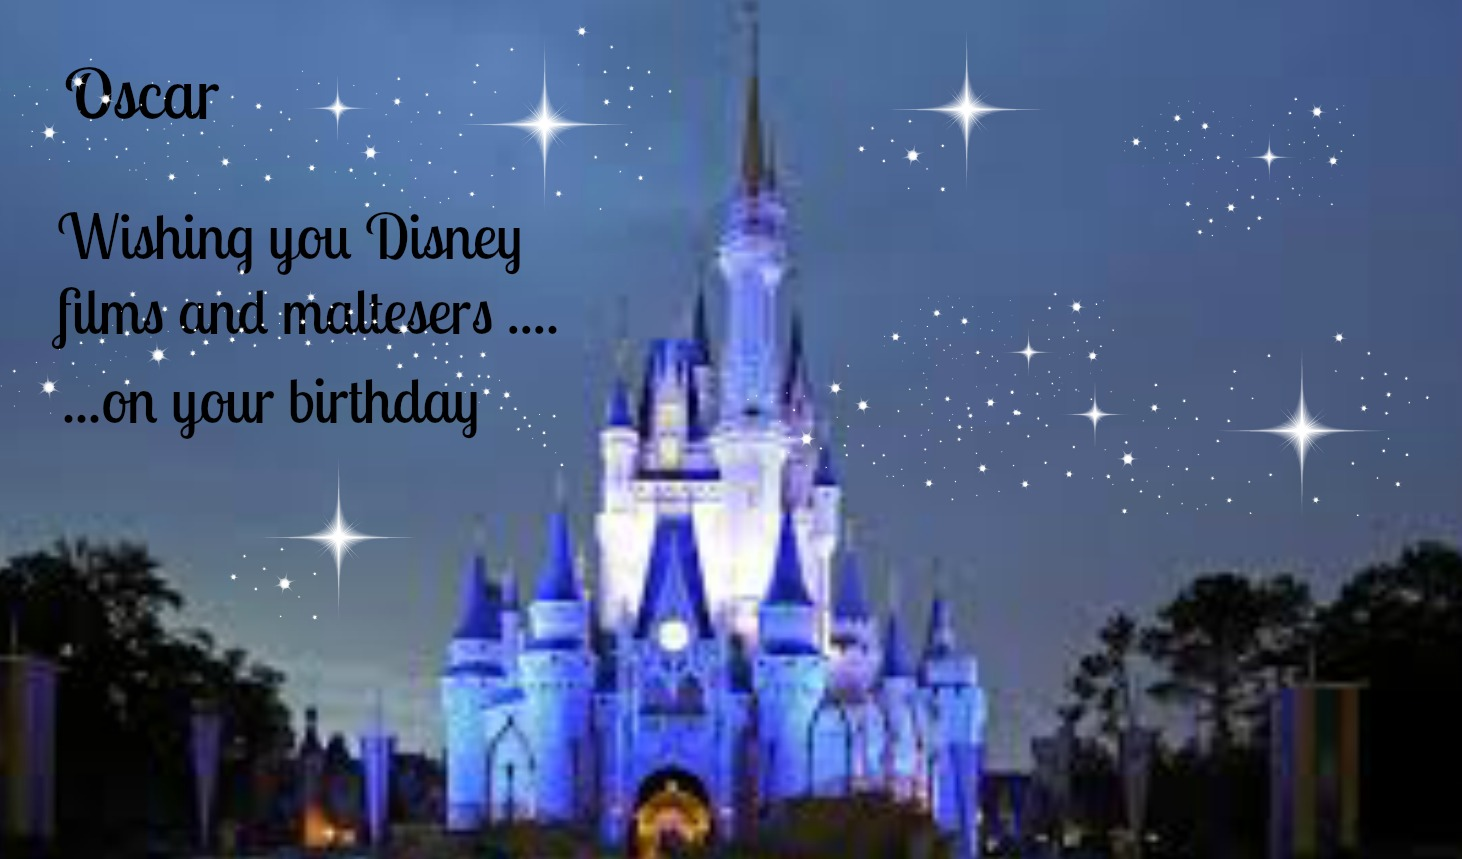 Birthday wishes i wish you disney films and maltesers support for disney films and maltesers kristyandbryce Choice Image